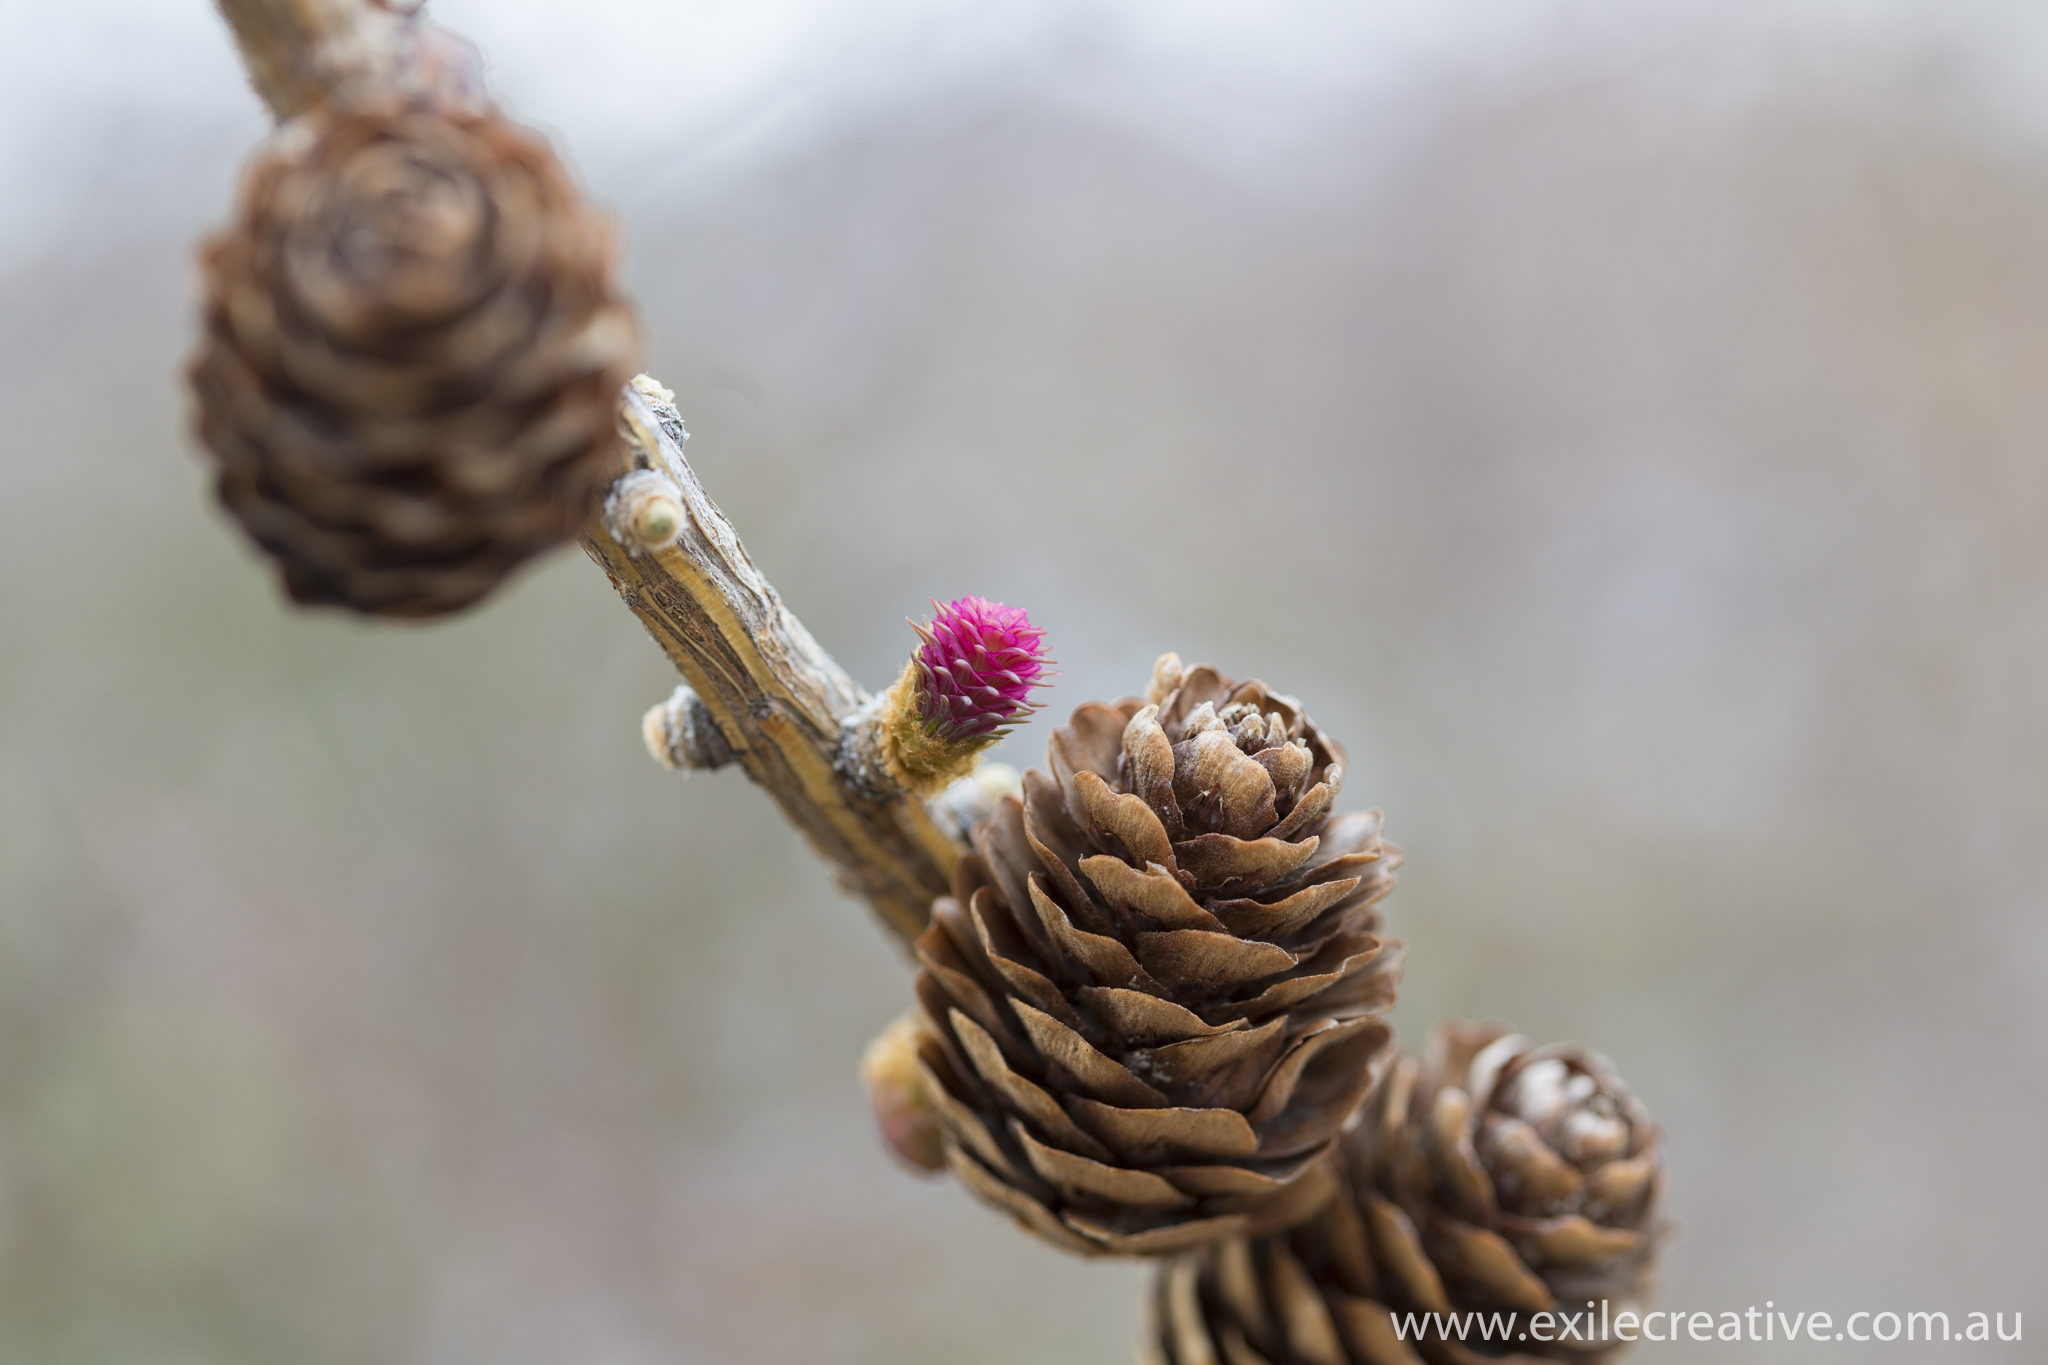 Pine cones and buds...colour contrast had me mesmerised!  Canon 5Dmiii, 100mm Macro @ 100mm, ISO400, f/4, 1/250